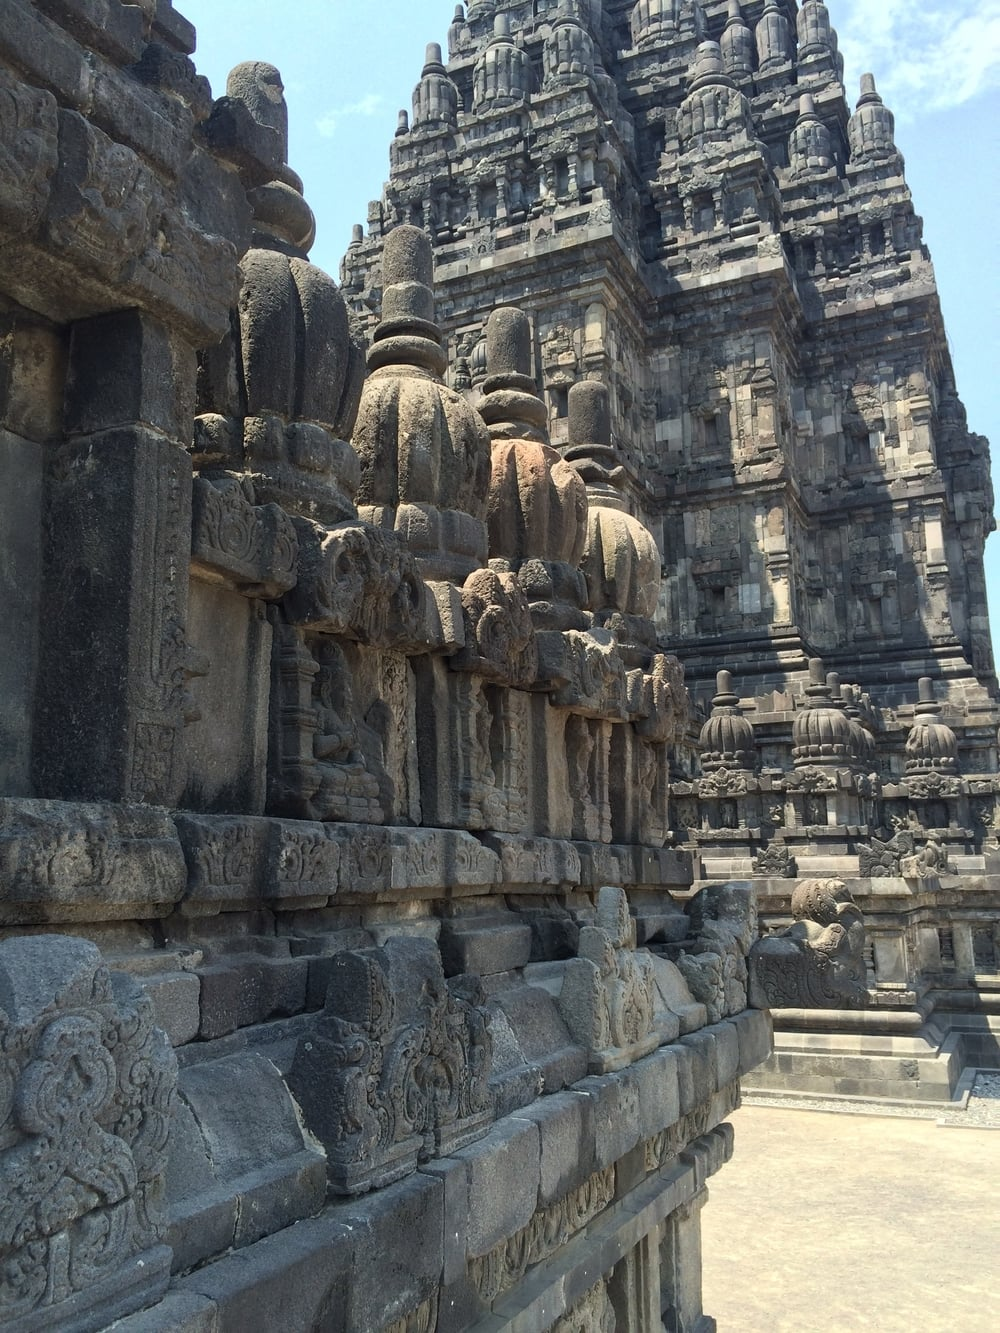 Prambanan was built in 800 BC. It has been struck by 2 major earth quakes, so many parts have been lost and many of the smaller temples are being restored